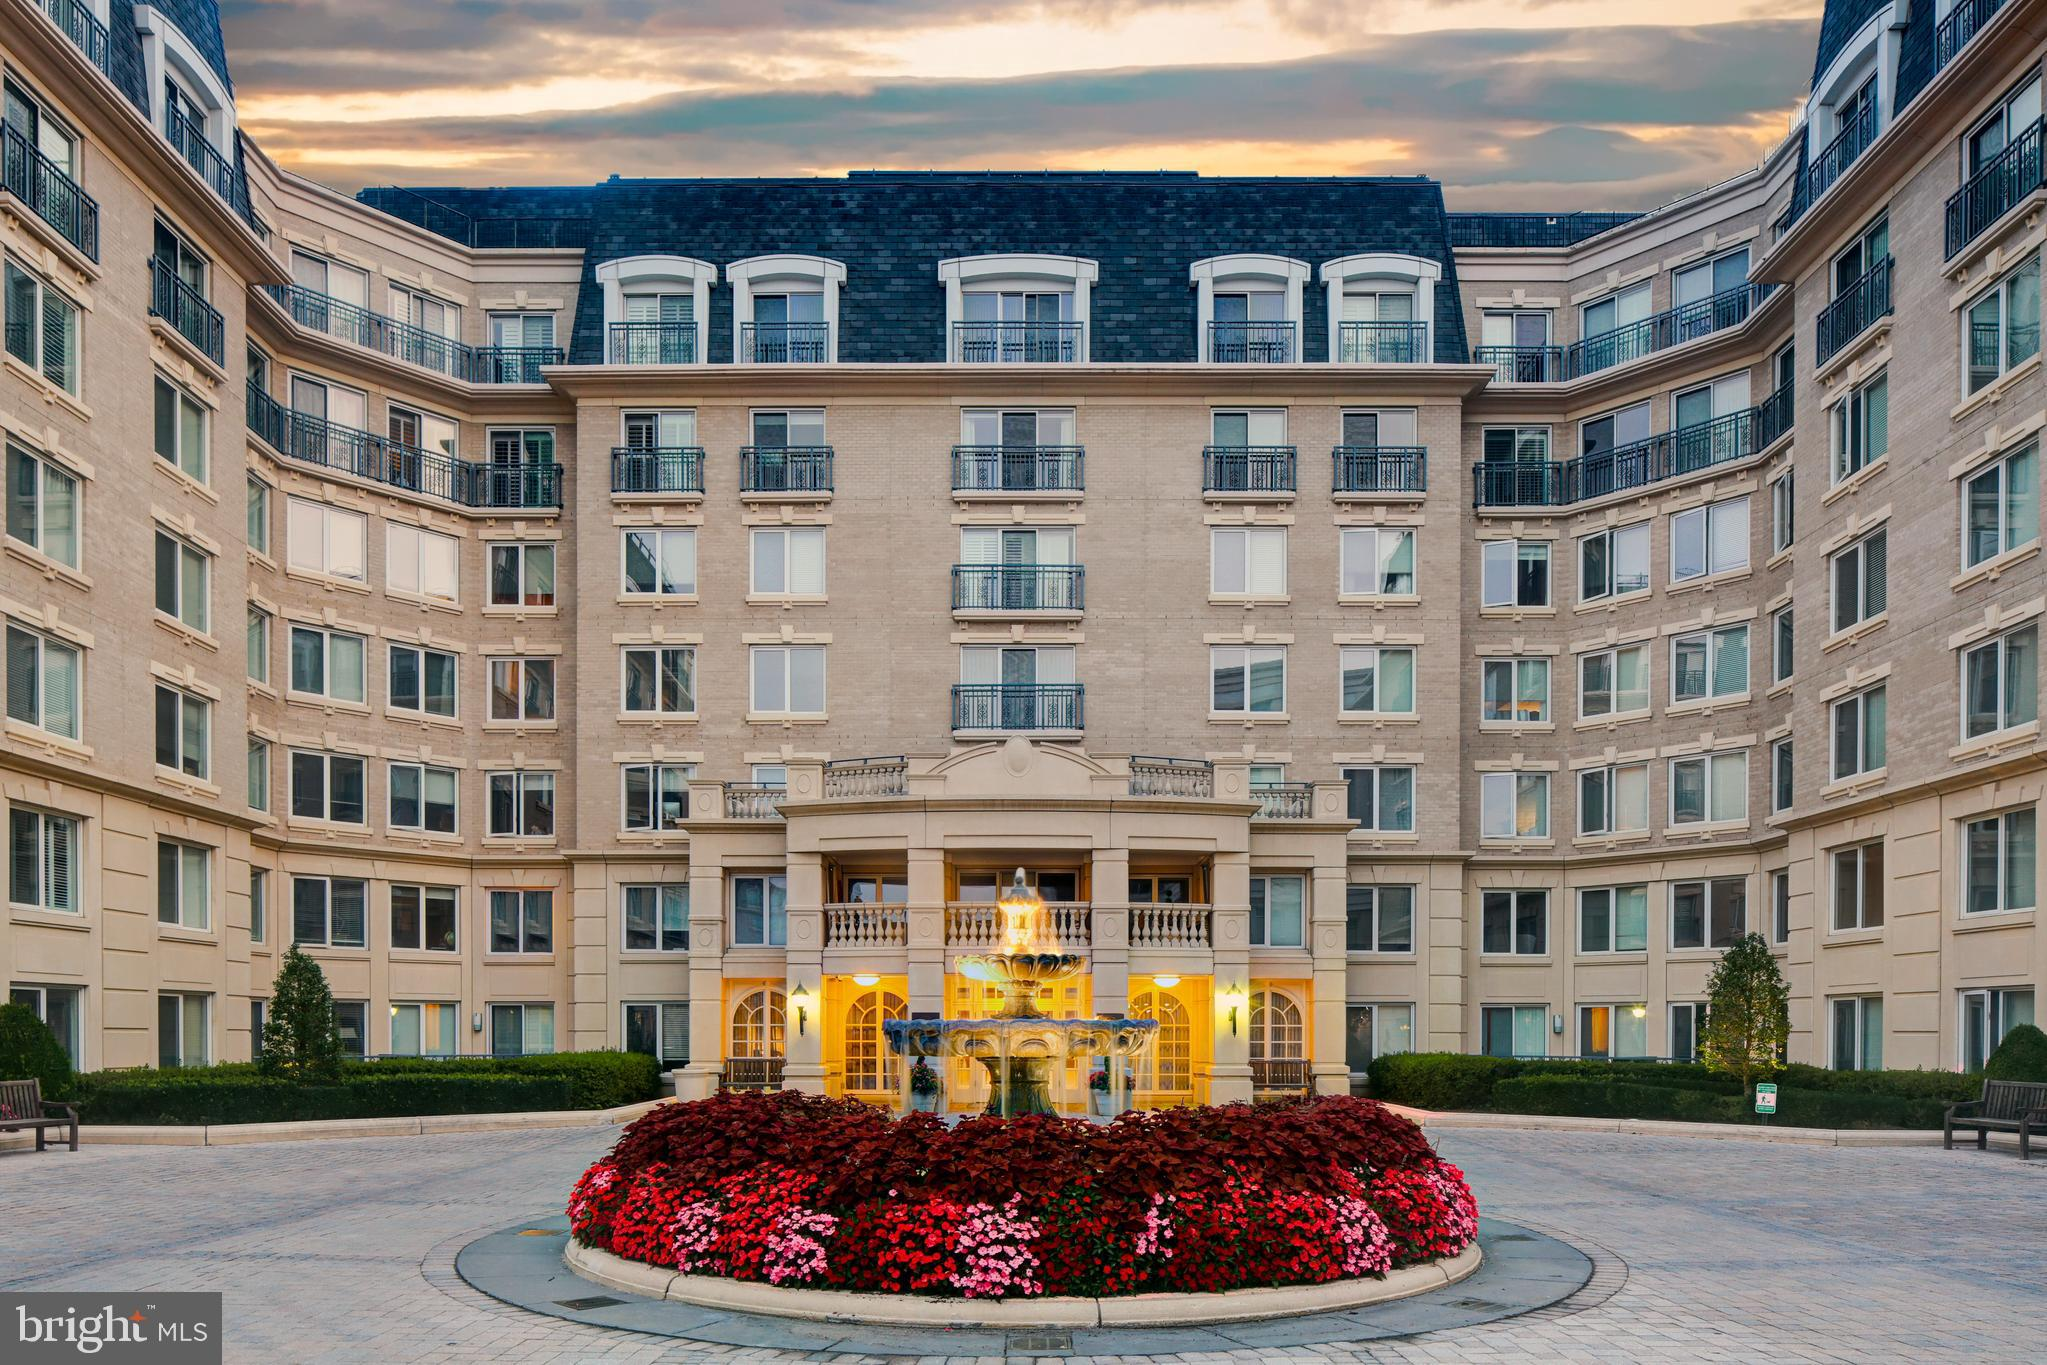 5 PARK PLACE, ANNAPOLIS, Maryland 21401, 2 Bedrooms Bedrooms, ,3 BathroomsBathrooms,Condominium,For Sale,5 PARK PLACE,MDAA451732